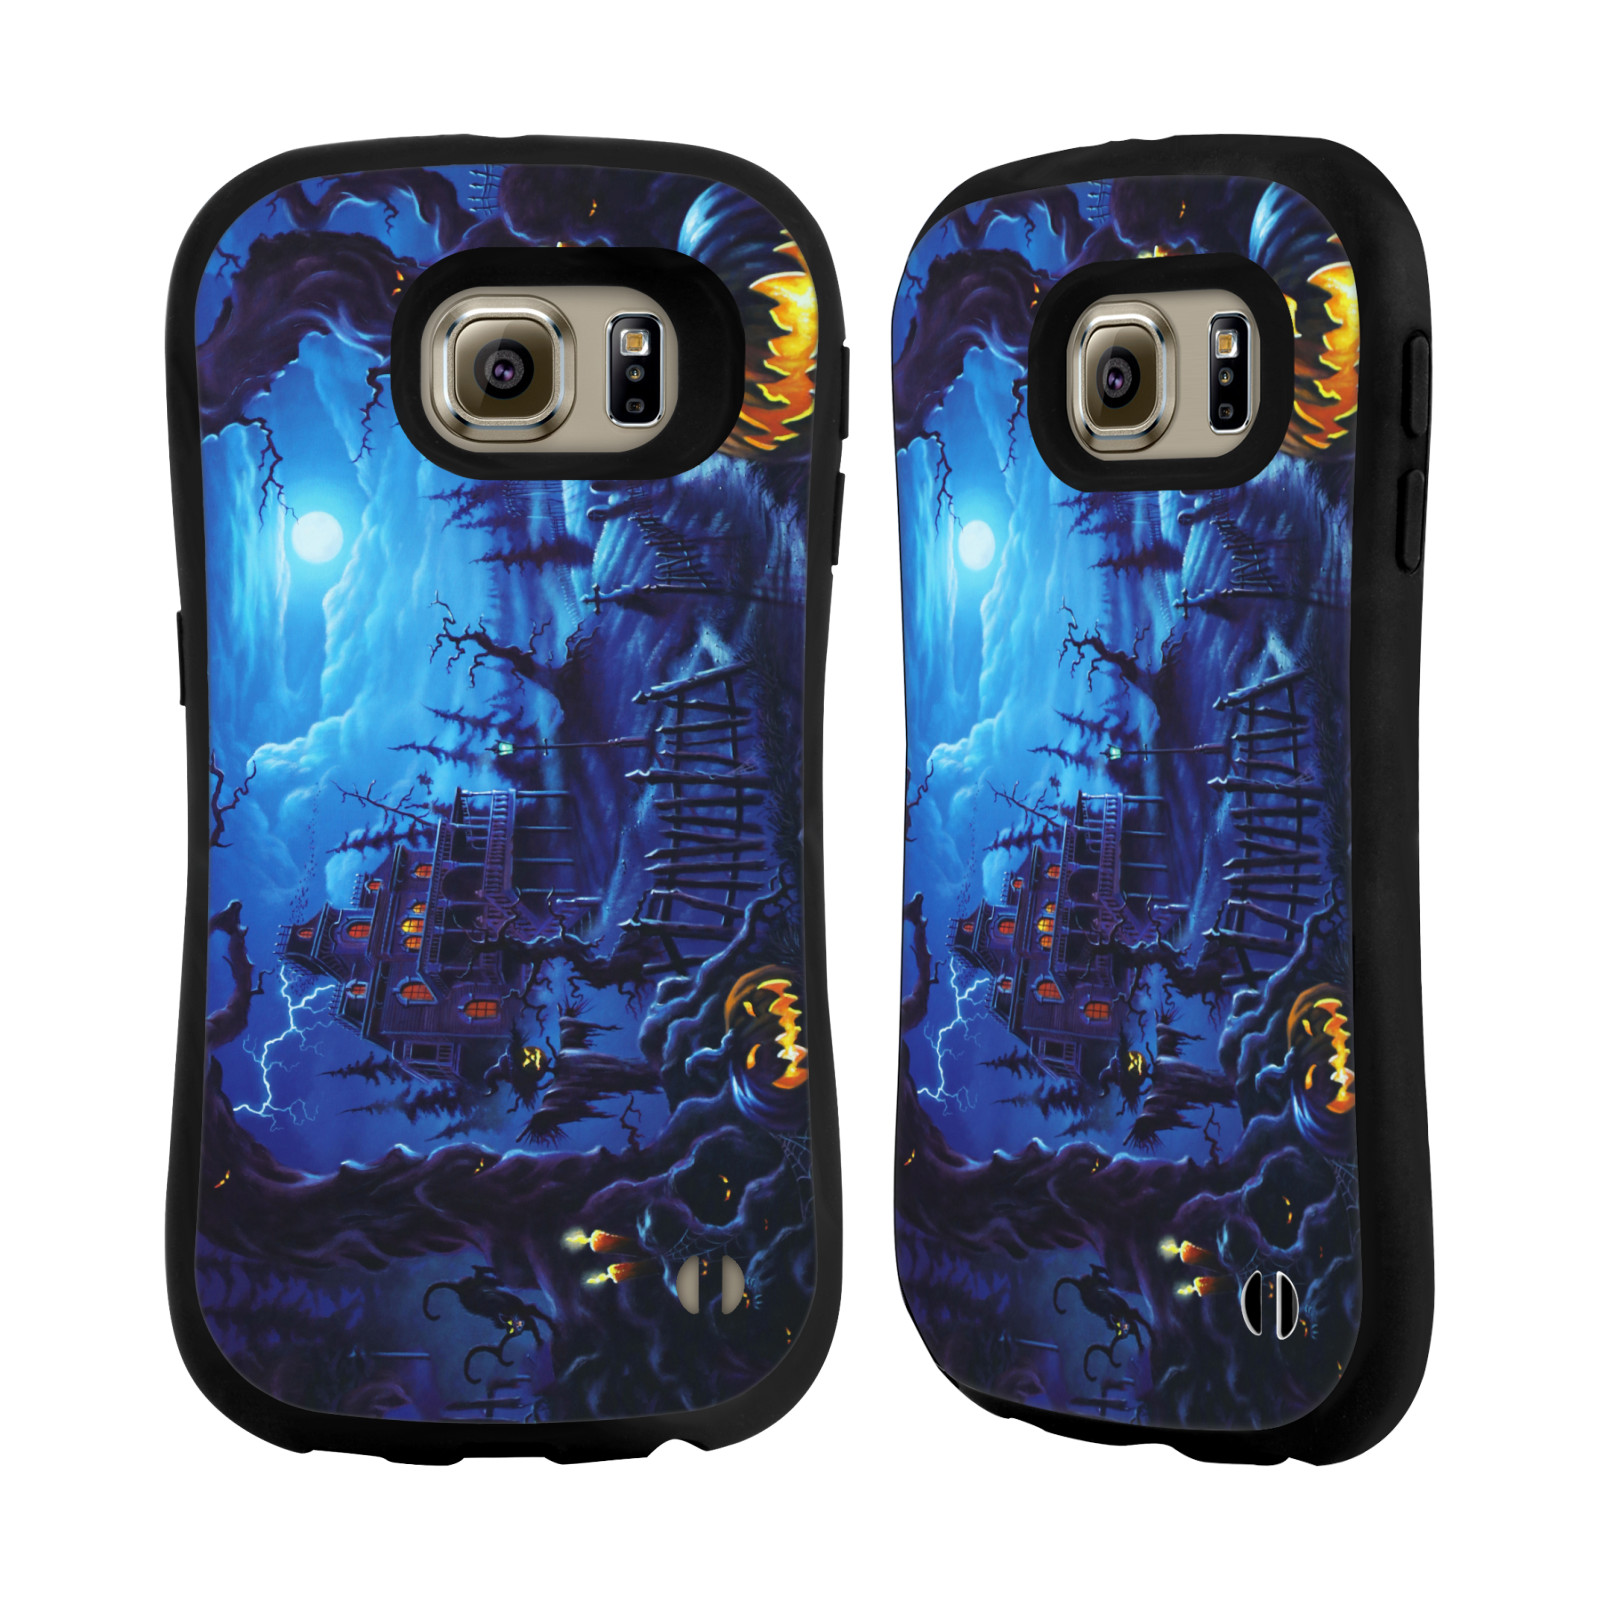 OFFICIAL-GENO-PEOPLES-ART-HALLOWEEN-HYBRID-CASE-FOR-SAMSUNG-PHONES